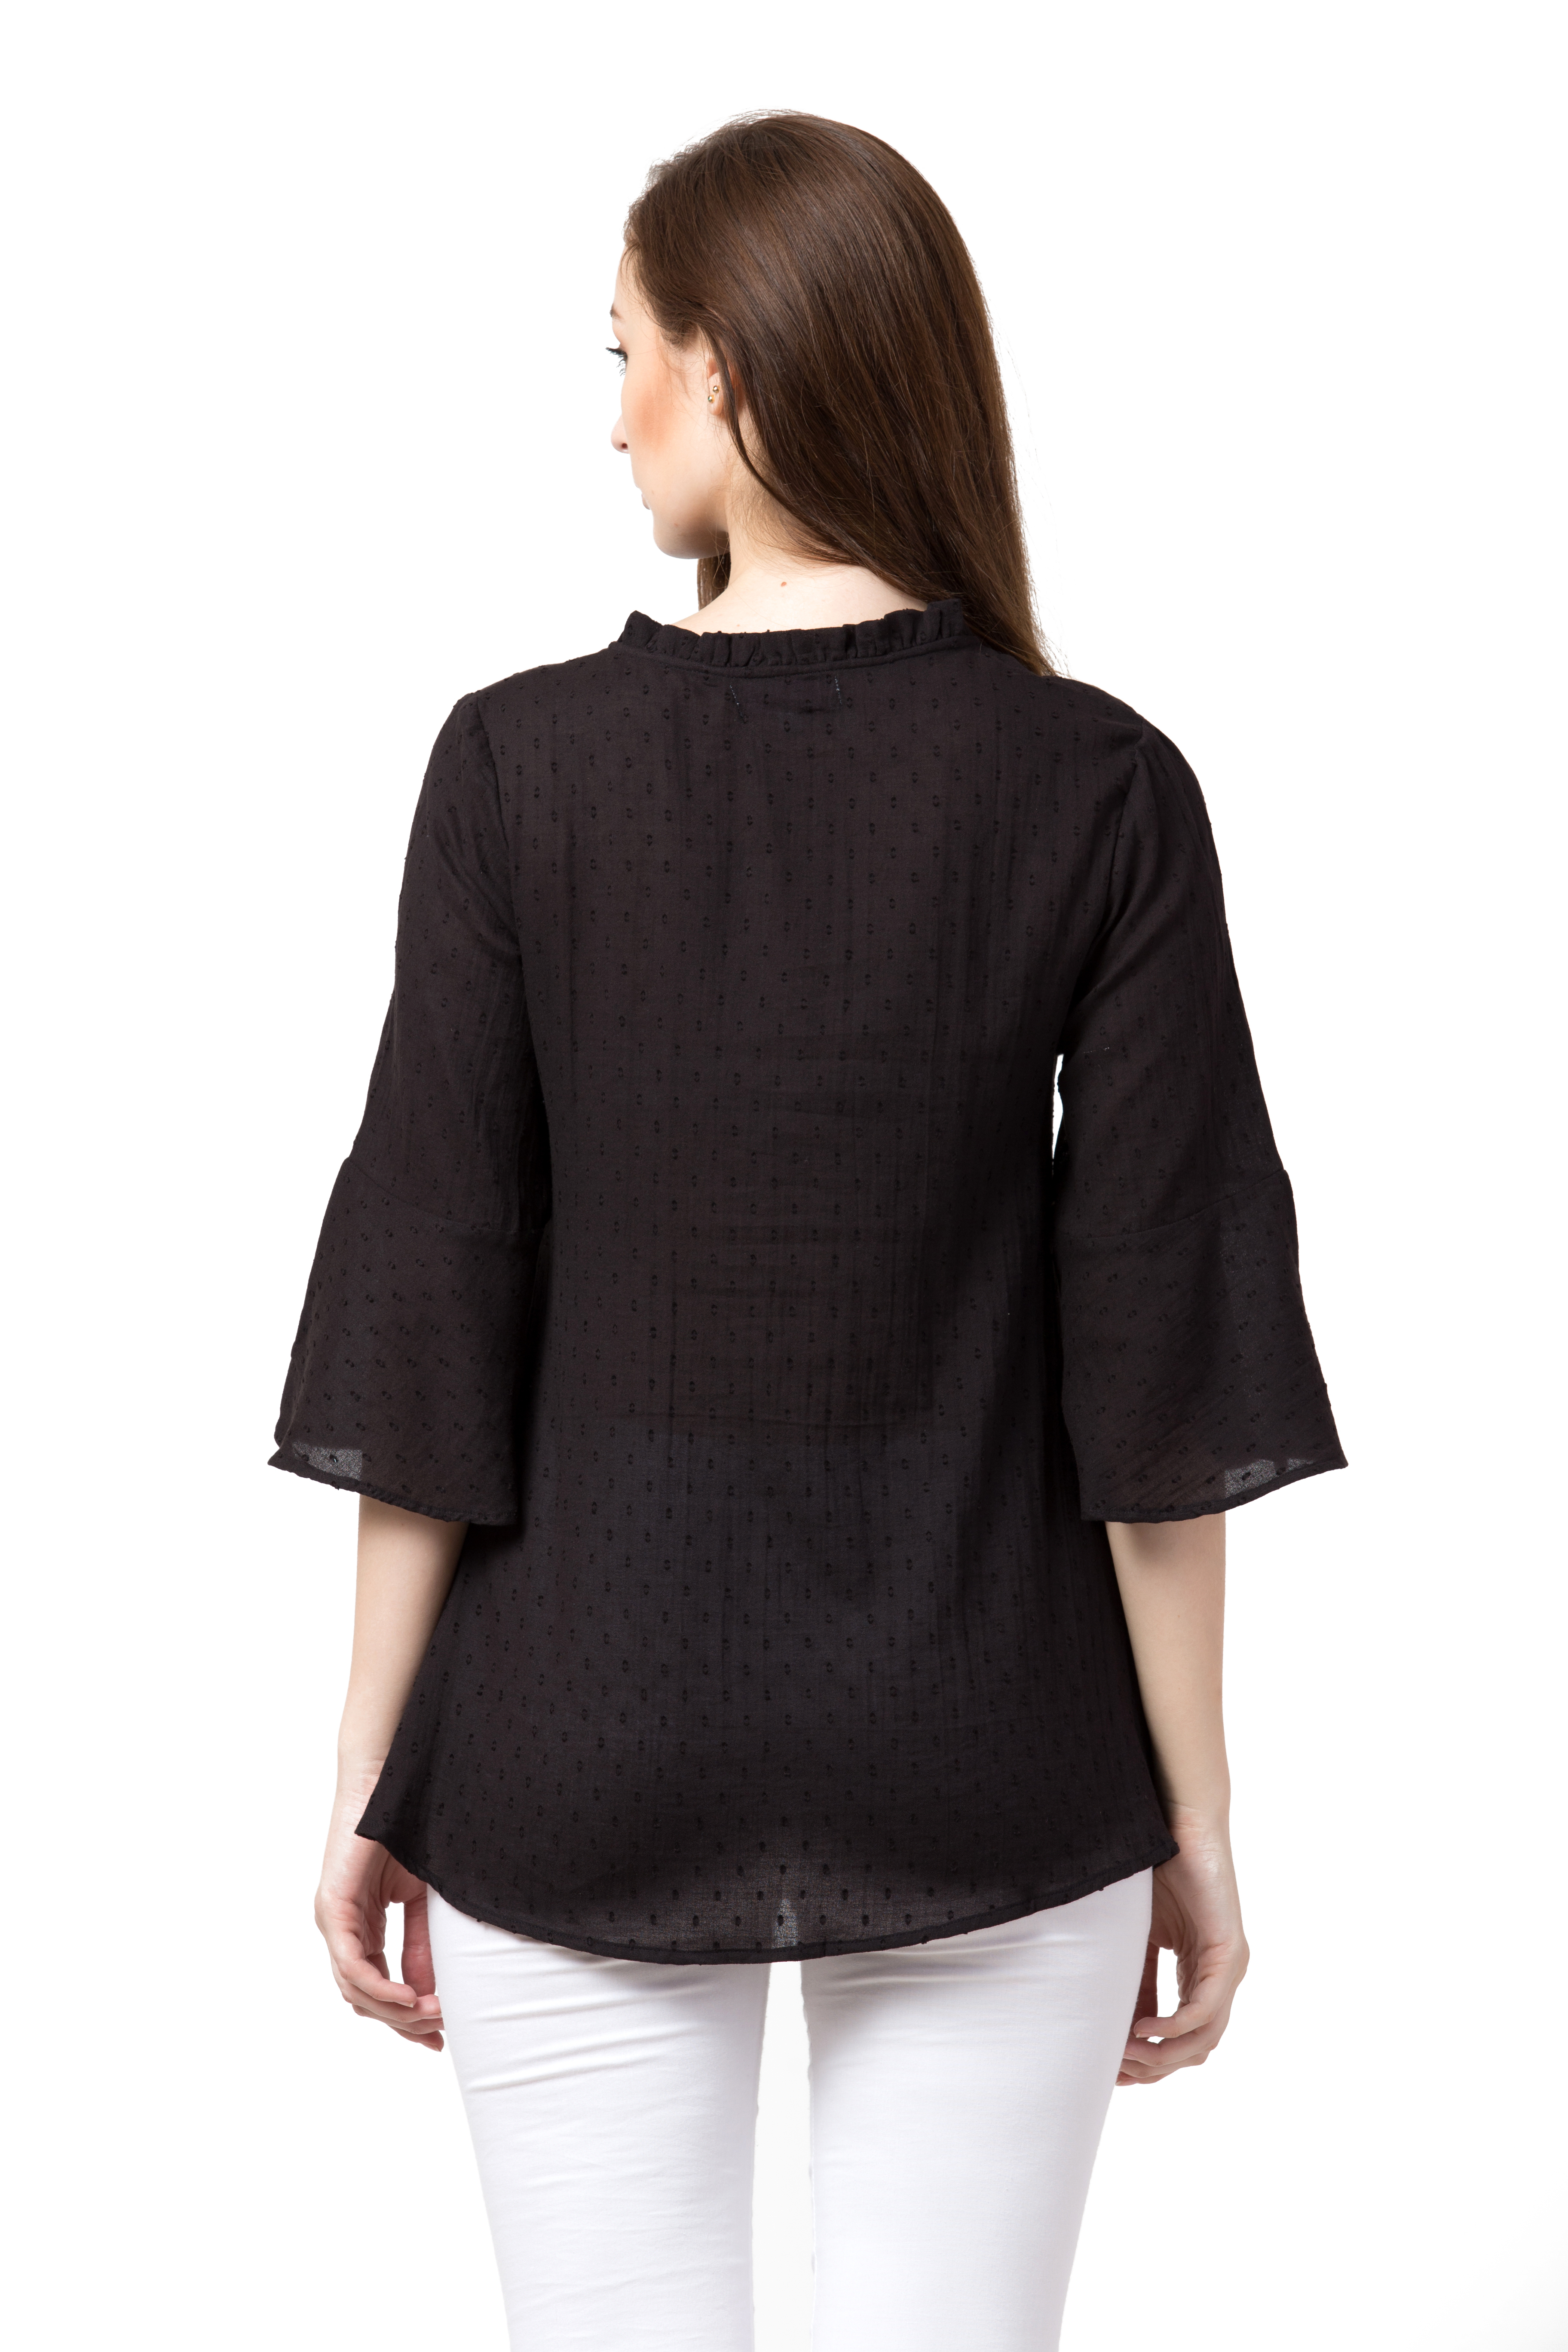 Solid Keyhole Neck Top For Women